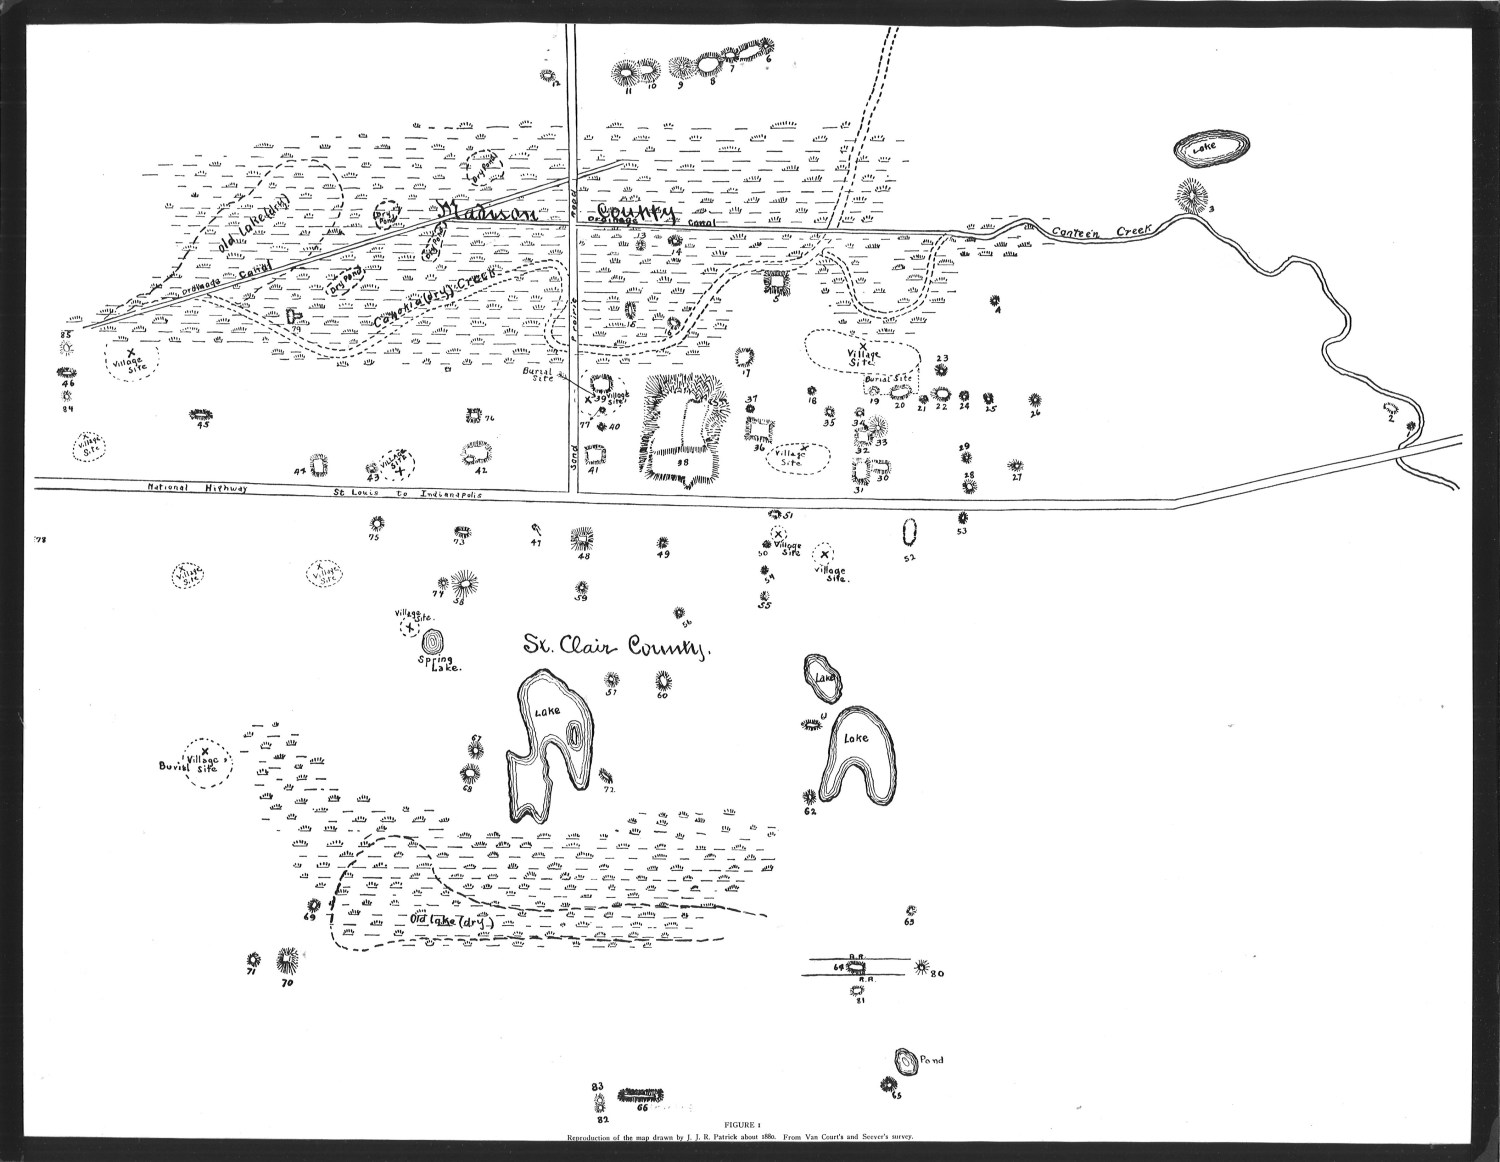 map of Cahokia mound city